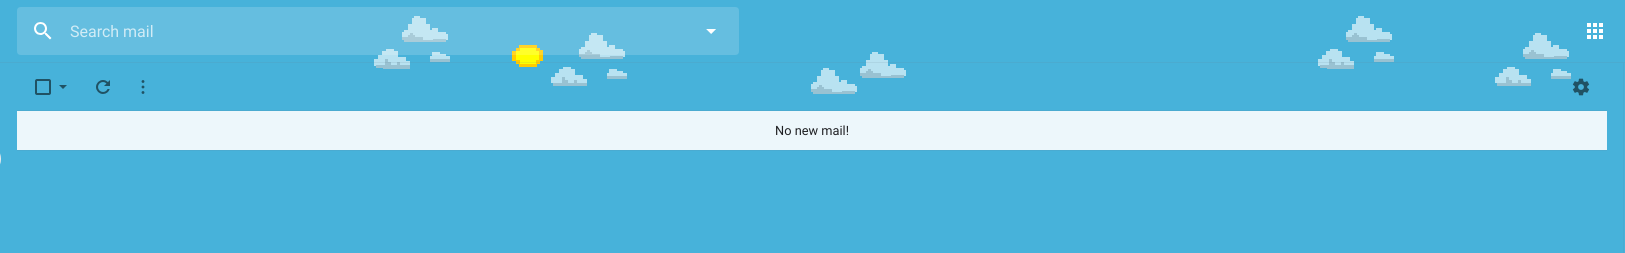 When all your emails are archived, Gmail shows this.